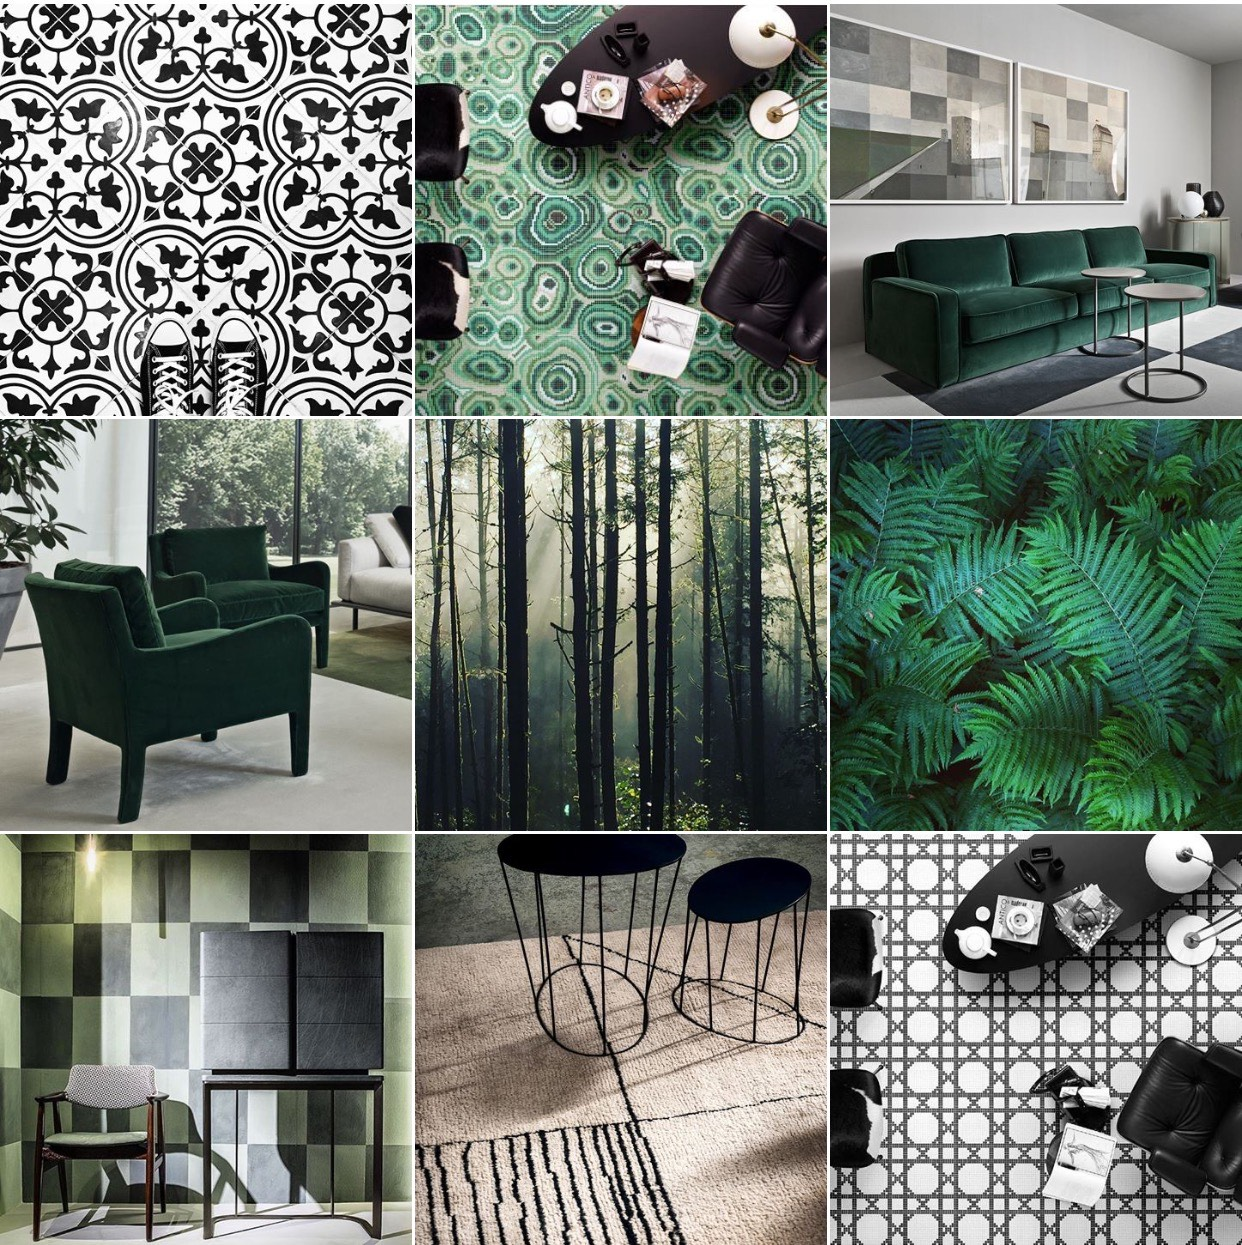 An archive Instagram moodboard when green was just emerging as a superpower, underpinned by Monochrome. The past and future together as one.